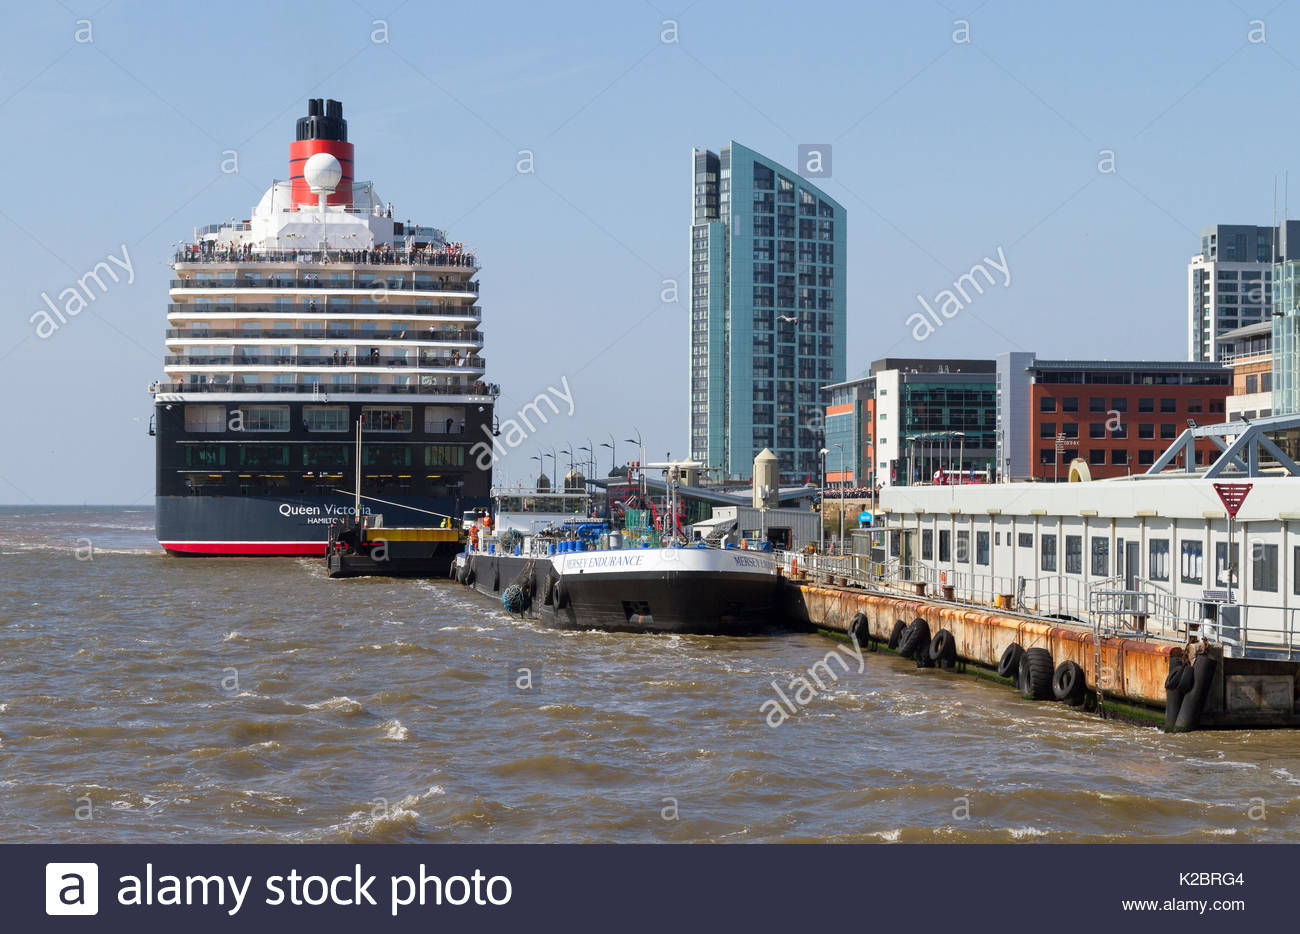 Cruise liner 'Queen Victoria' at  the Liverpool cruise liner terminal. Liverpool, Merseyside, England, UK. May 2014. - Stock Image